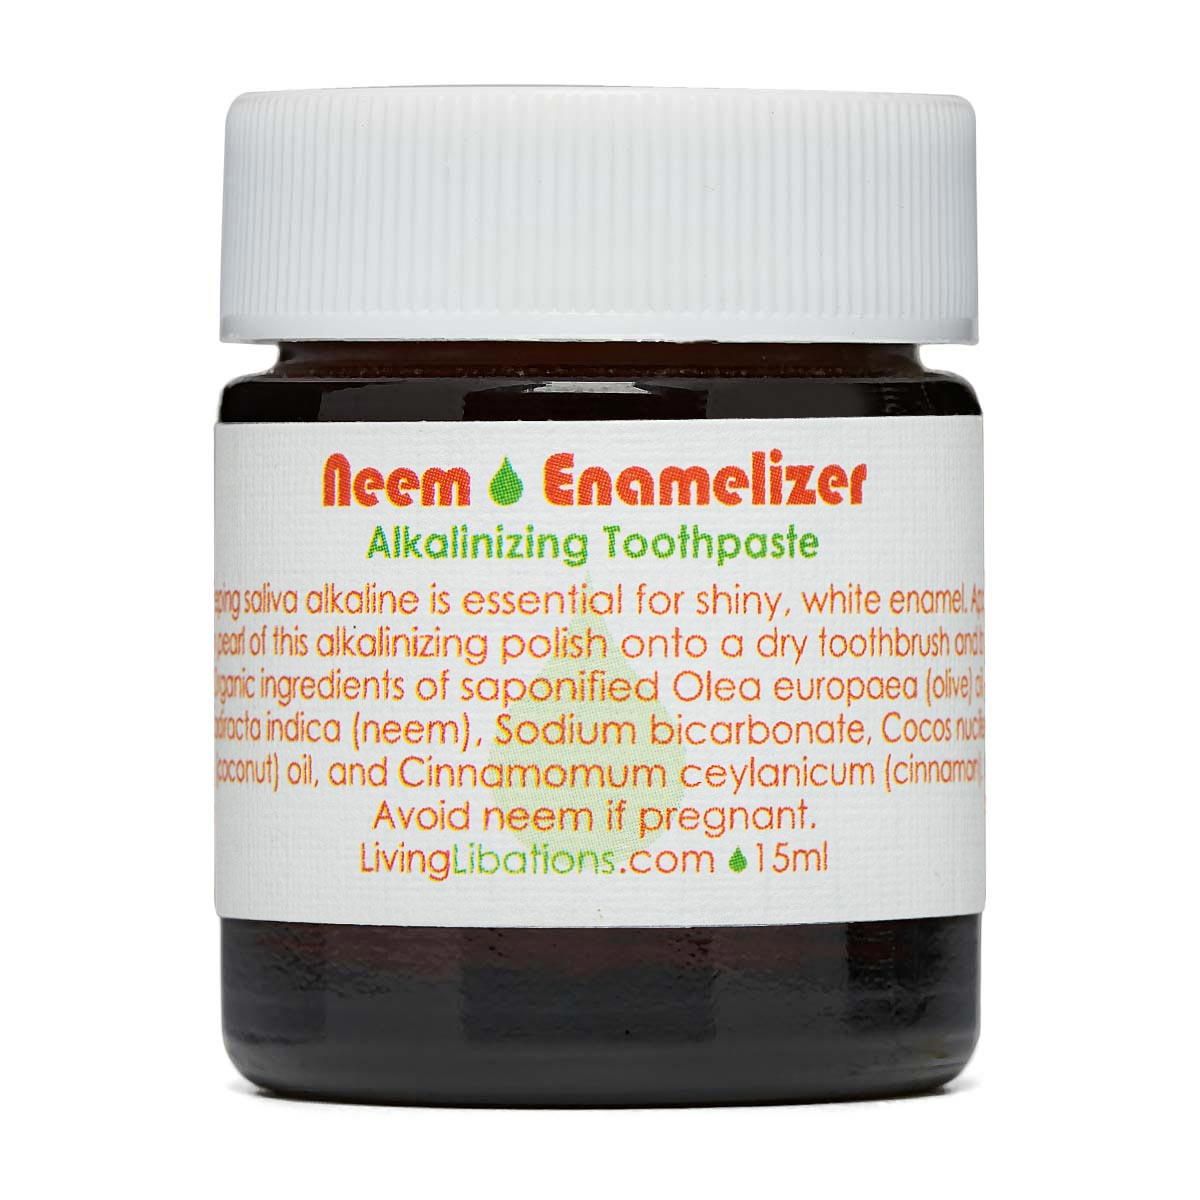 Living Libations - Neem Enamalizer Toothpaste (15ml)